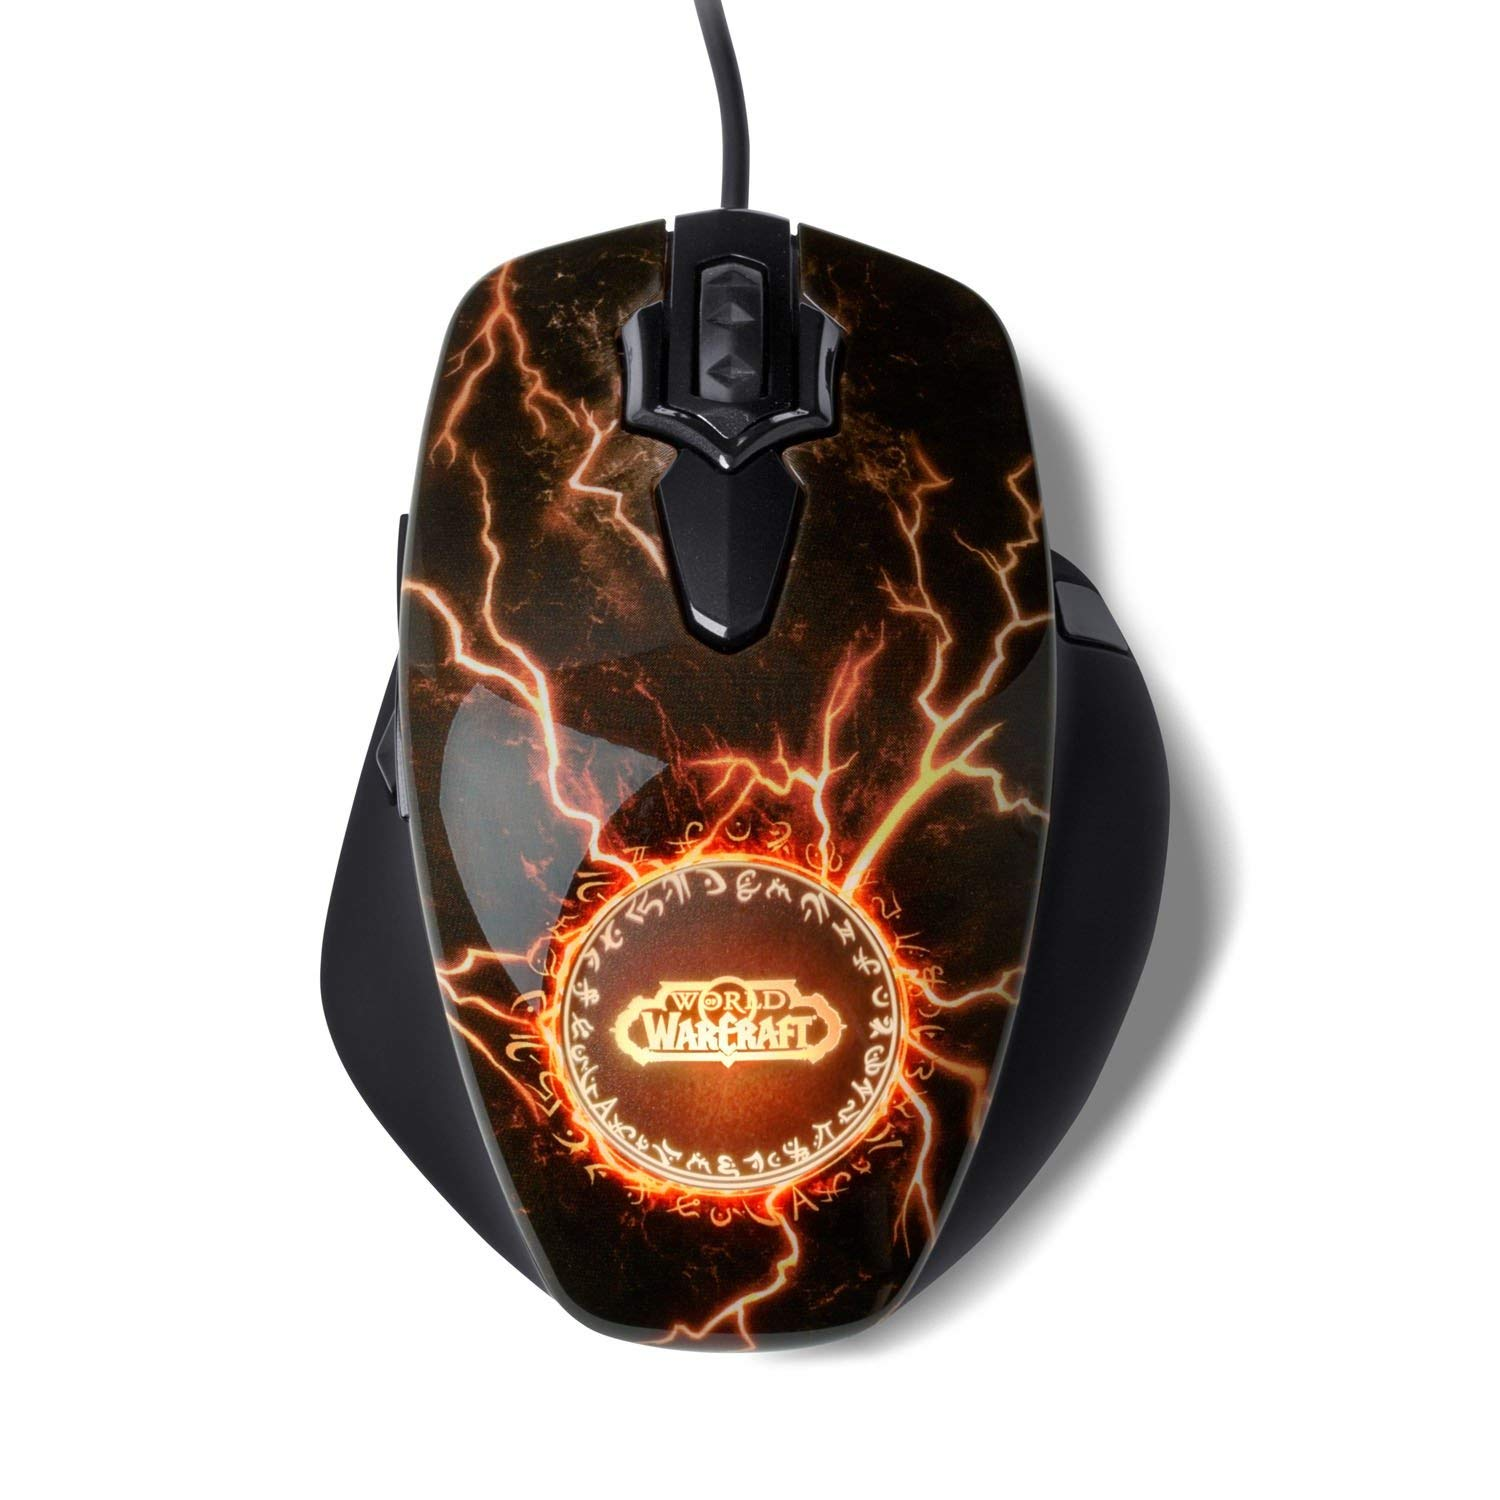 Best MMO mouse - Top 5 Best Products